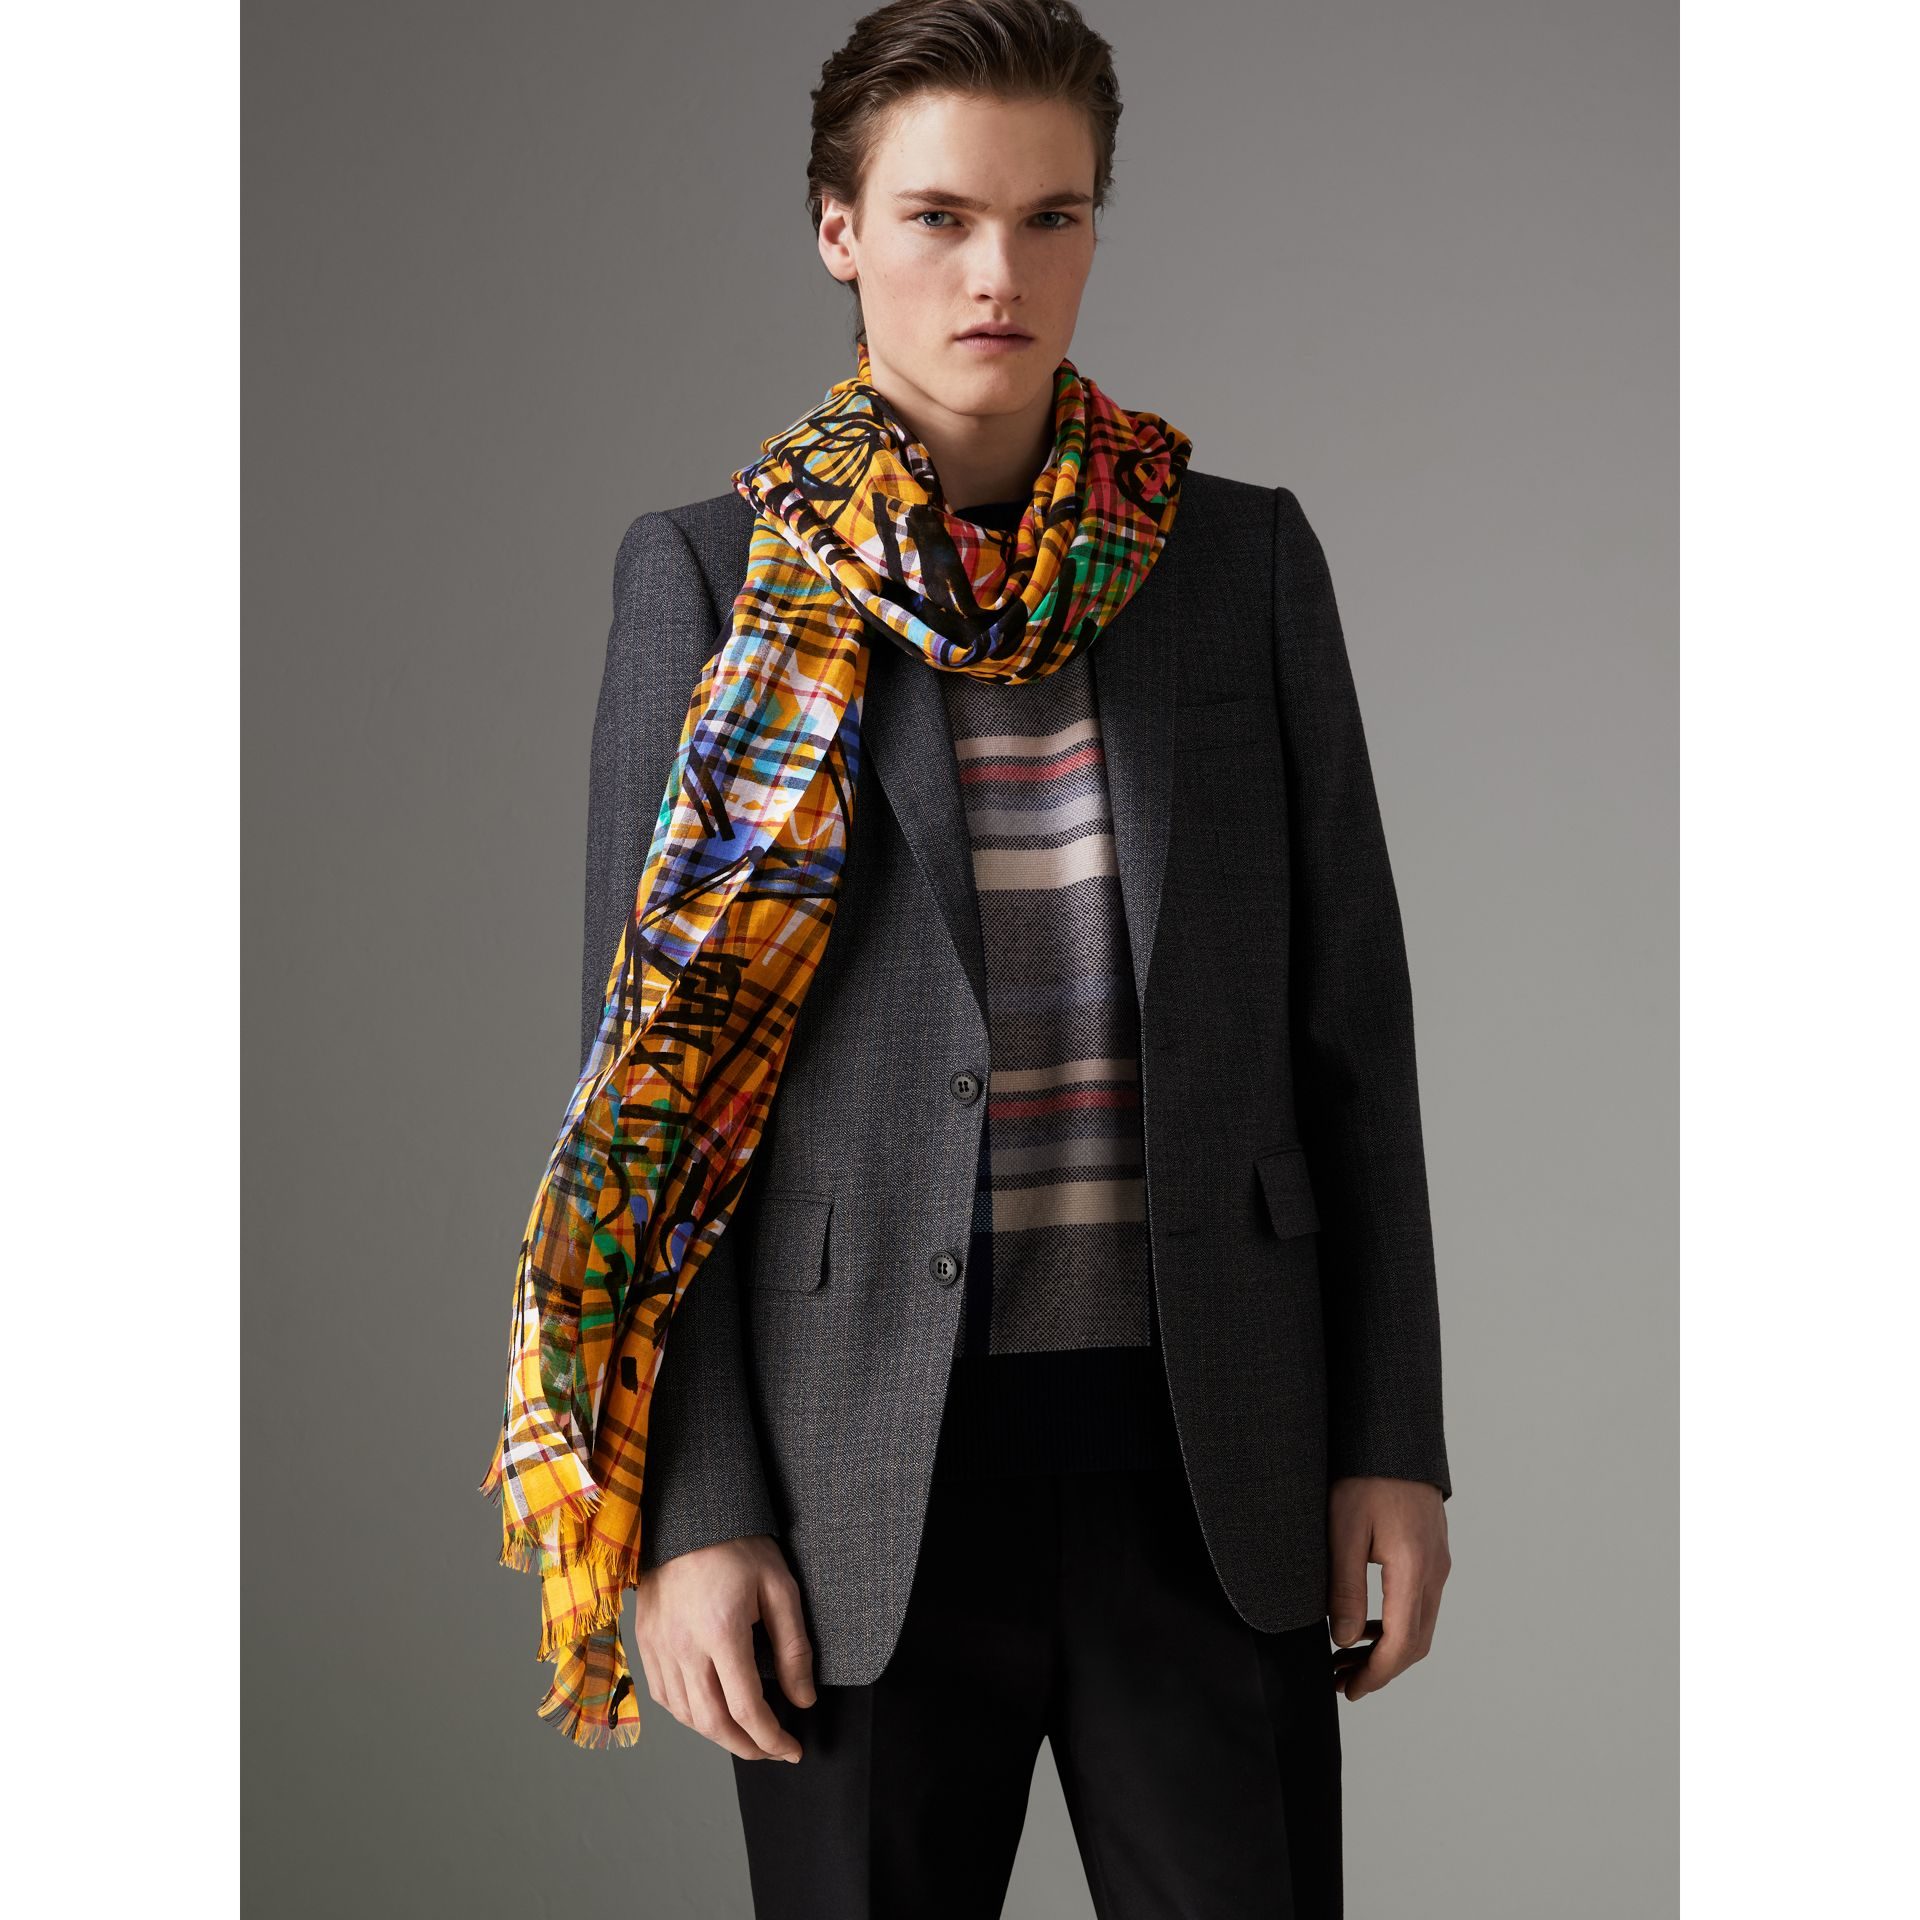 Graffiti Print Vintage Check Wool Silk Scarf in Amber Yellow | Burberry - gallery image 3